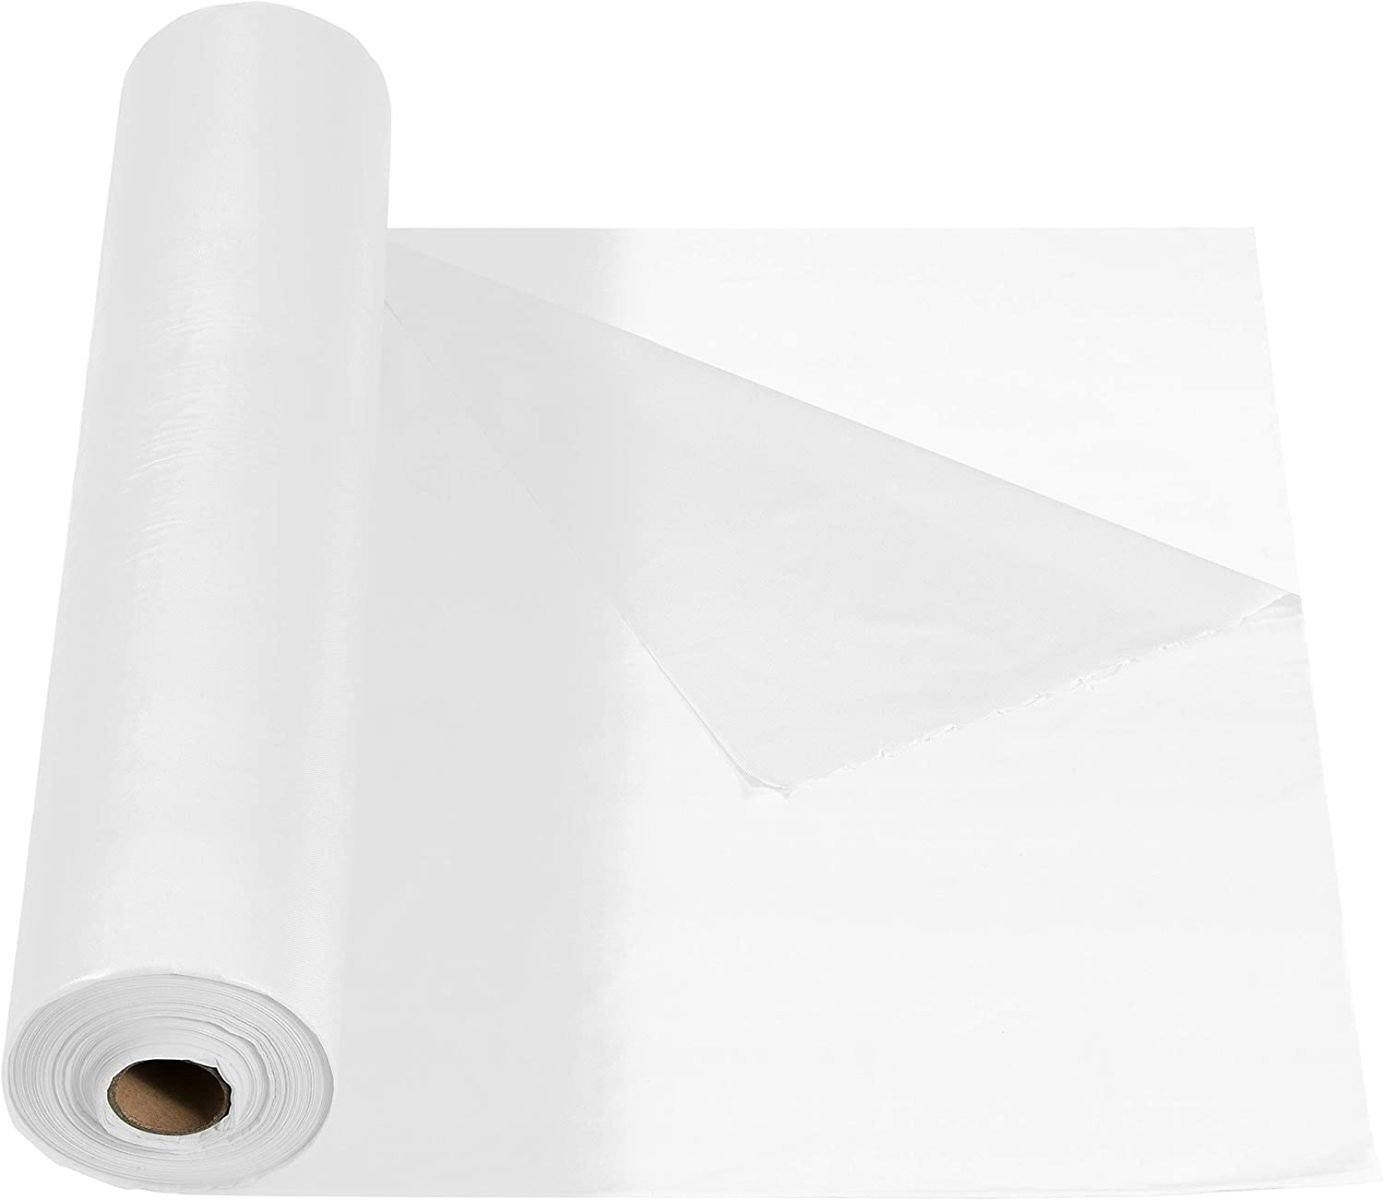 Creative Converting Plastic Table Cover Banquet Roll for $25.10